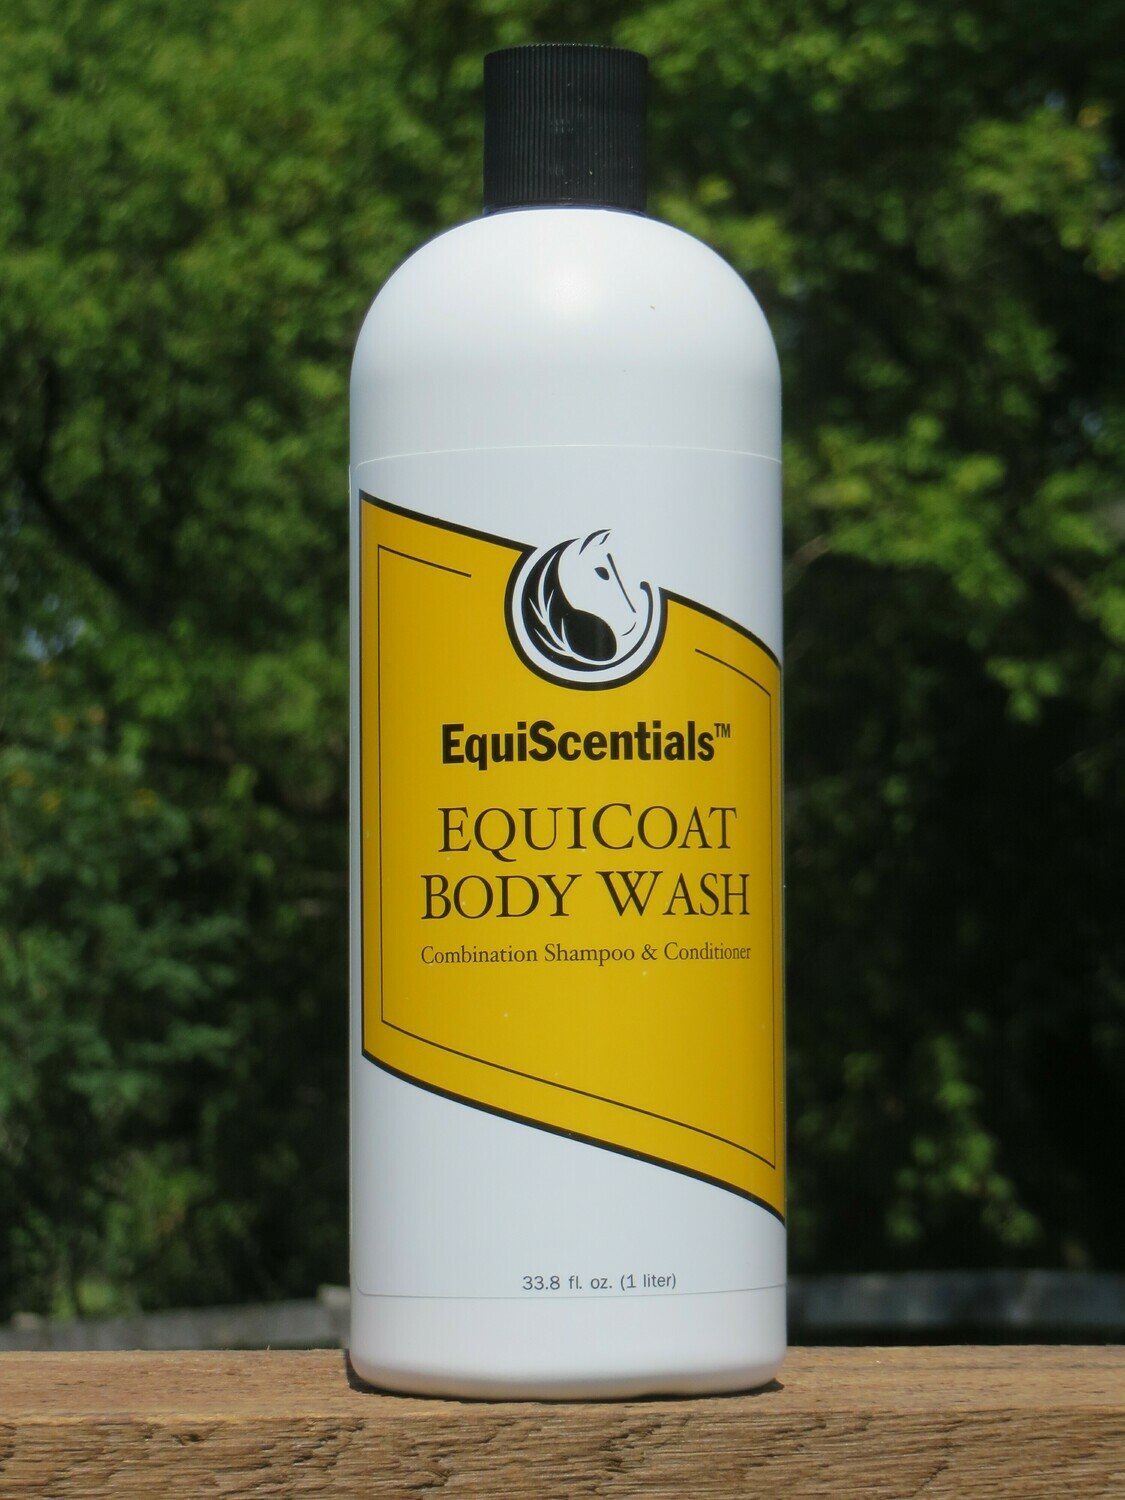 EquiScentials EquiCoat Body Wash - Lifts away dirt and dead skin